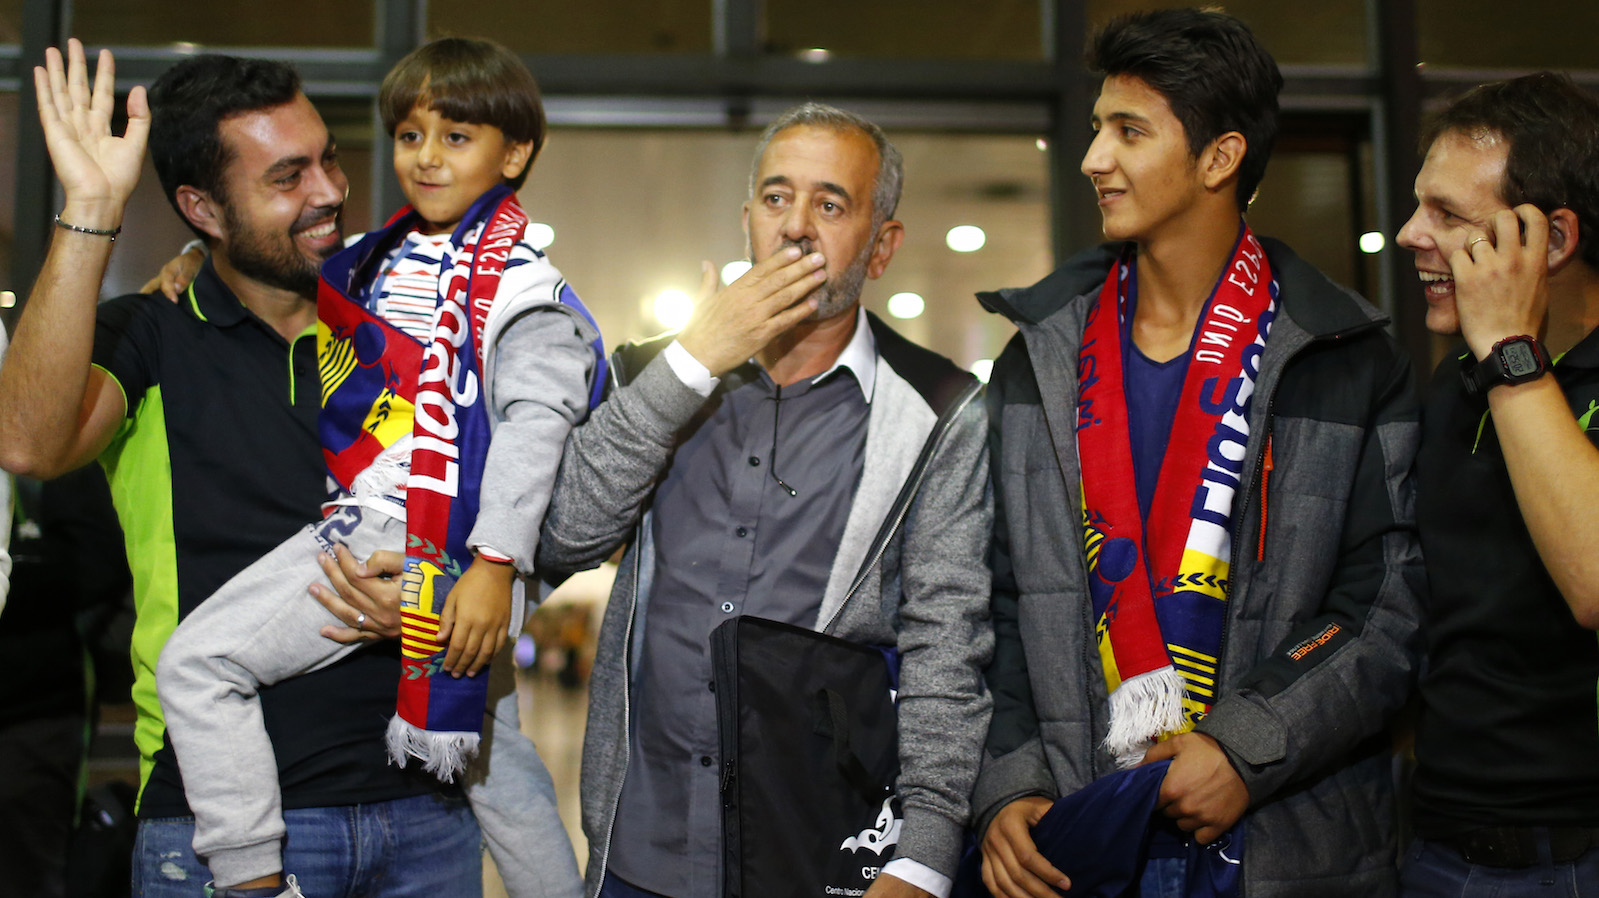 Syrian Osama Abdul Mohsen, center, reacts next to his son Zaid, left, as they arrive at the Barcelona train station on Wednesday, Sept.16, 2015. The Syrian refugee tripped at a border hotspot by a Hungarian journalist in an incident captured on video that generated global outrage will live in a Madrid suburb after a Spanish soccer academy convinced him to take an apartment offer and help to rebuild his life, an official with the school said Wednesday. Osama Abdul Mohsen was on a train expected to arrive in Madrid at midnight Wednesday.